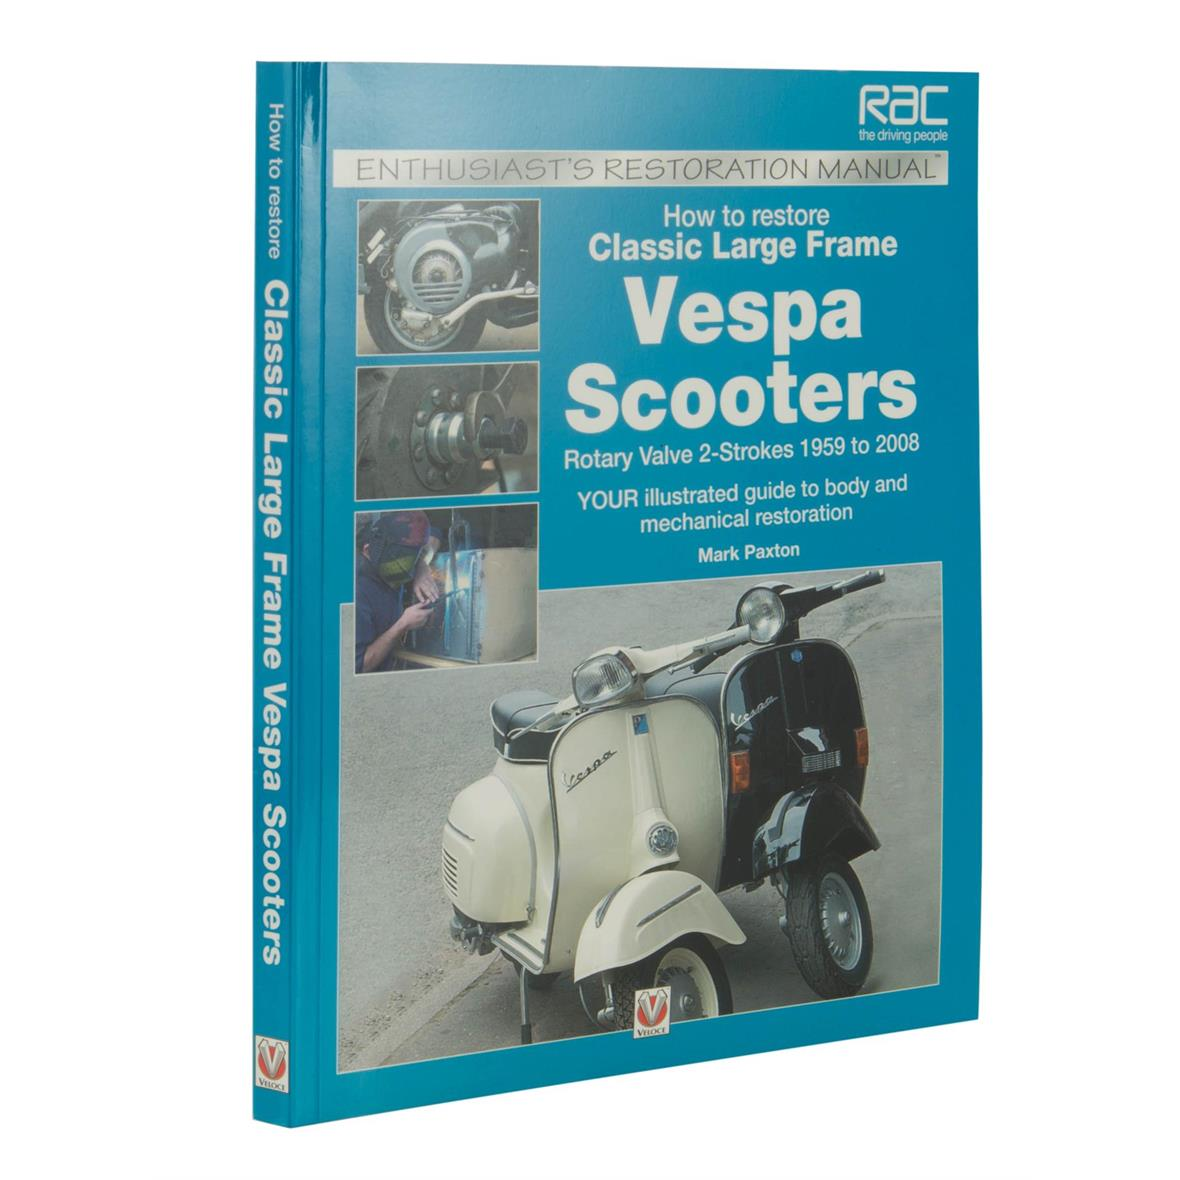 """Product Image for 'Hand Book """"How to restore Classic Largeframe Vespa Scooters"""" disc valve, 2-stroke, 1959 - 2008Title'"""